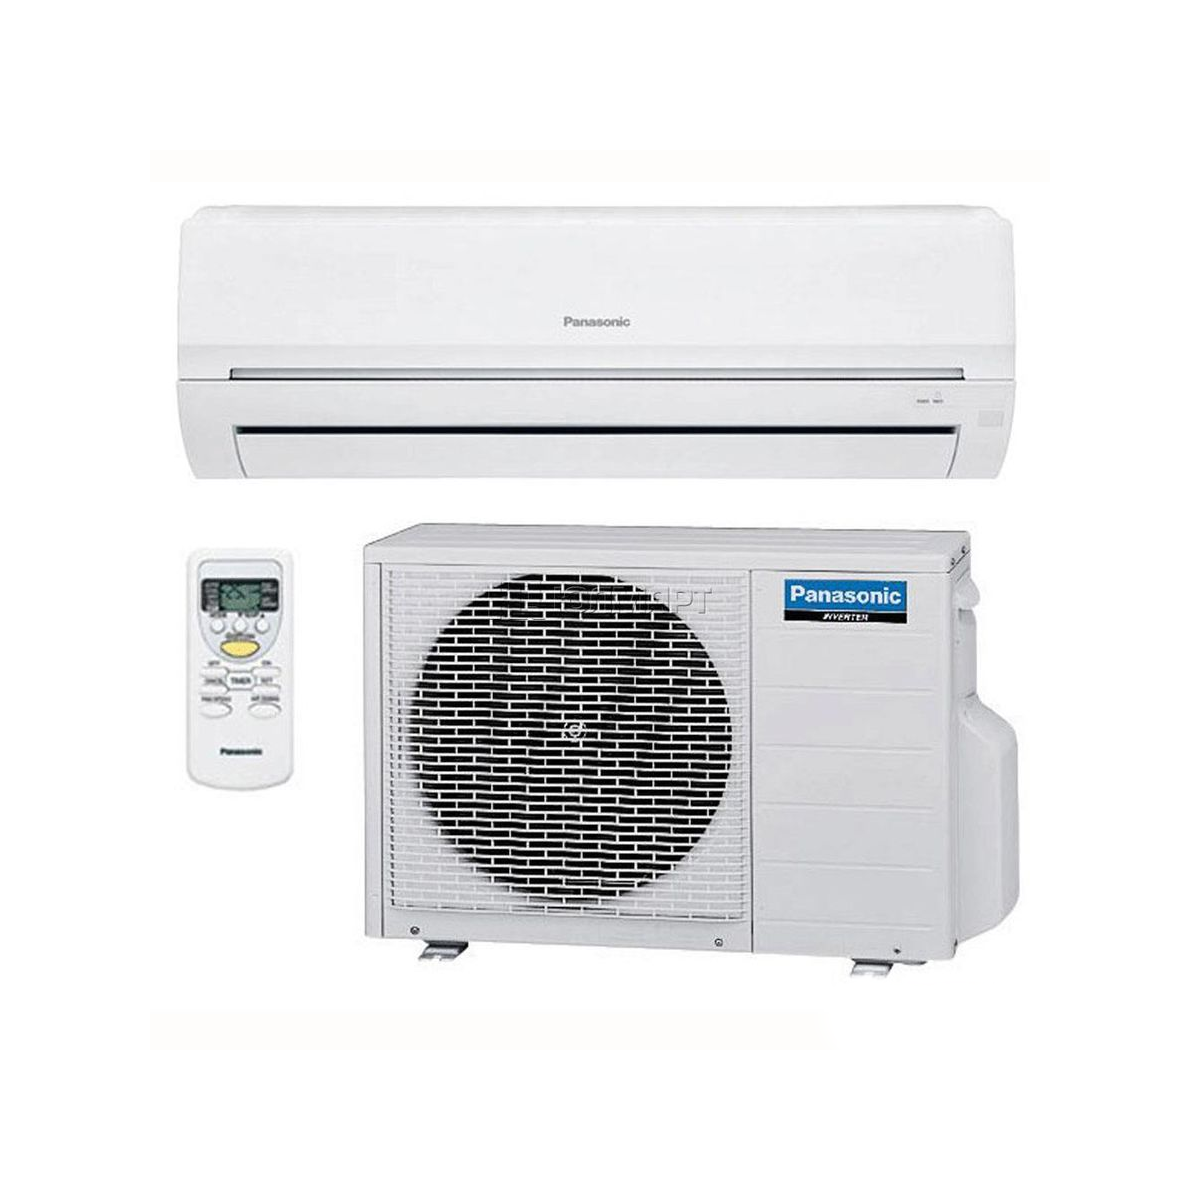 The Panasonic Pretty Air Conditioner Ar condicionado